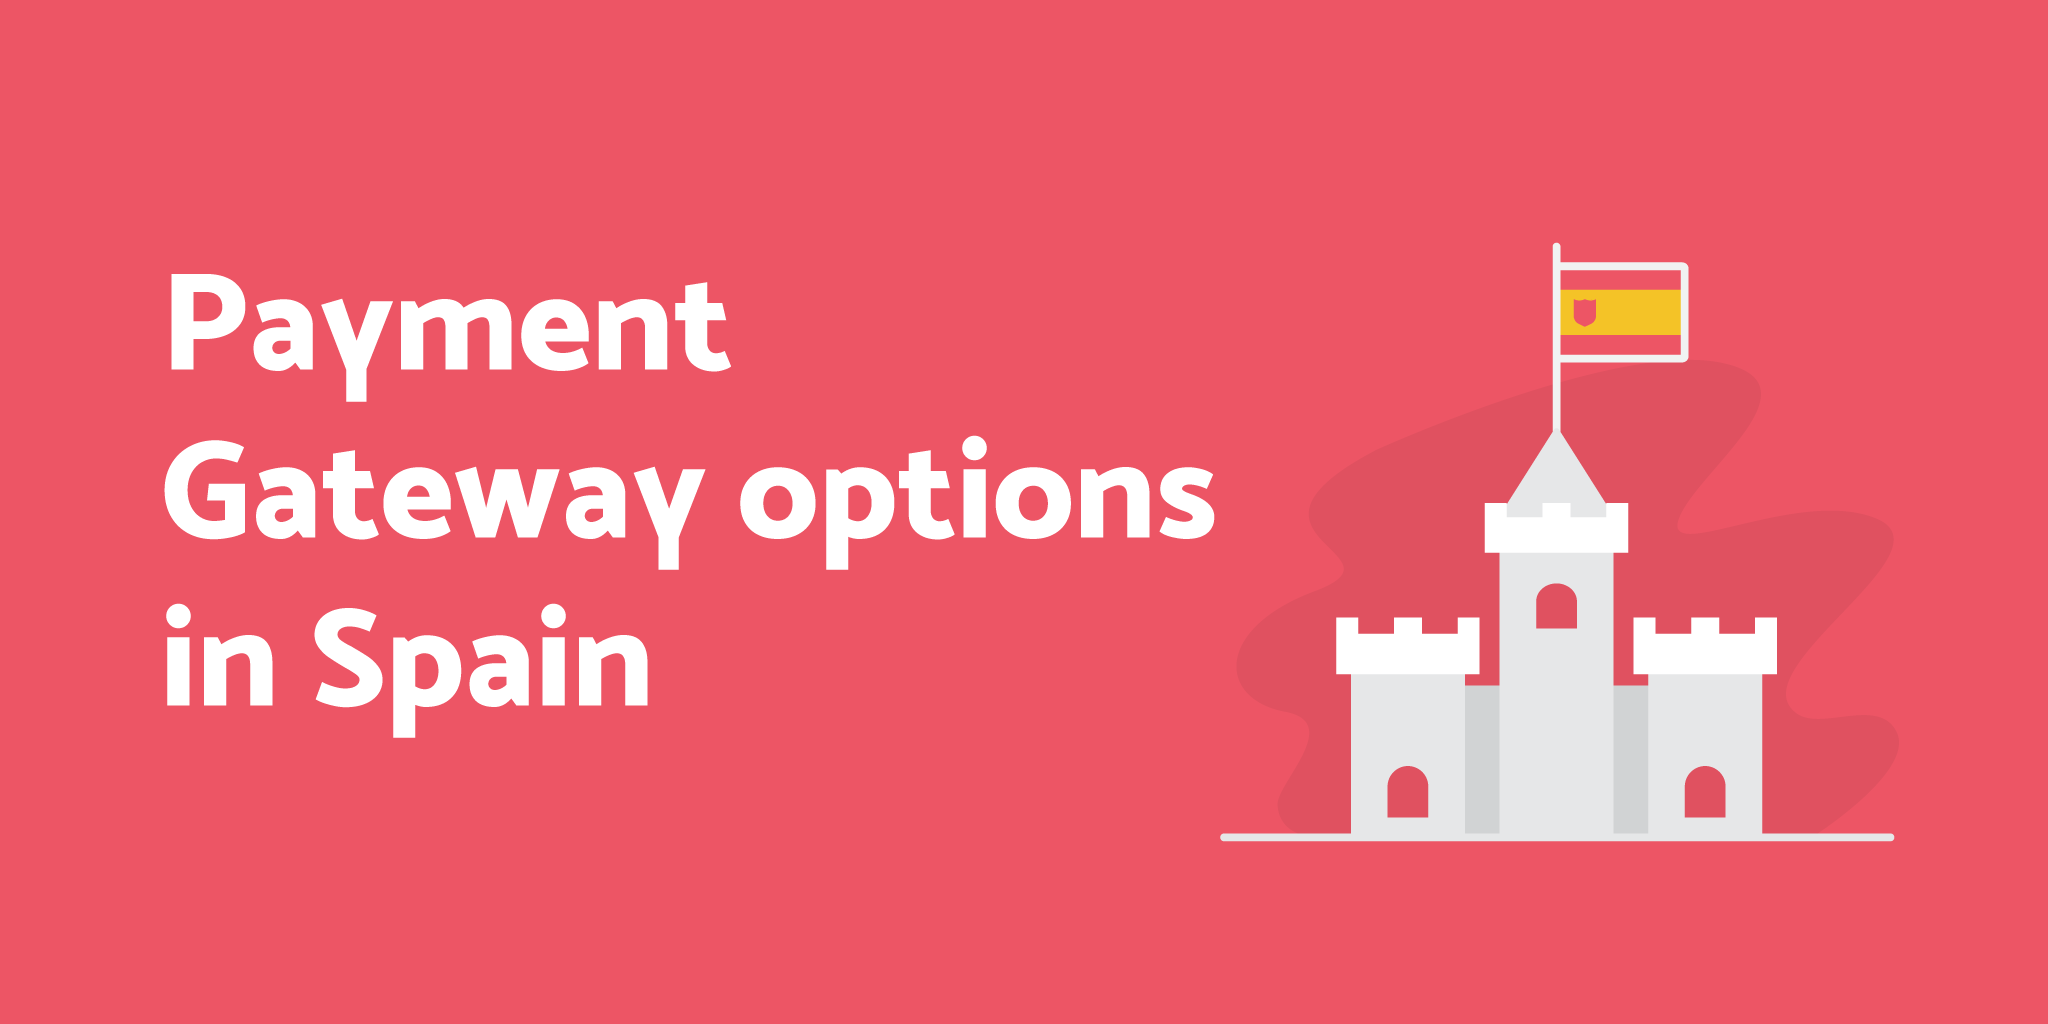 Payment Gateway options in Spain